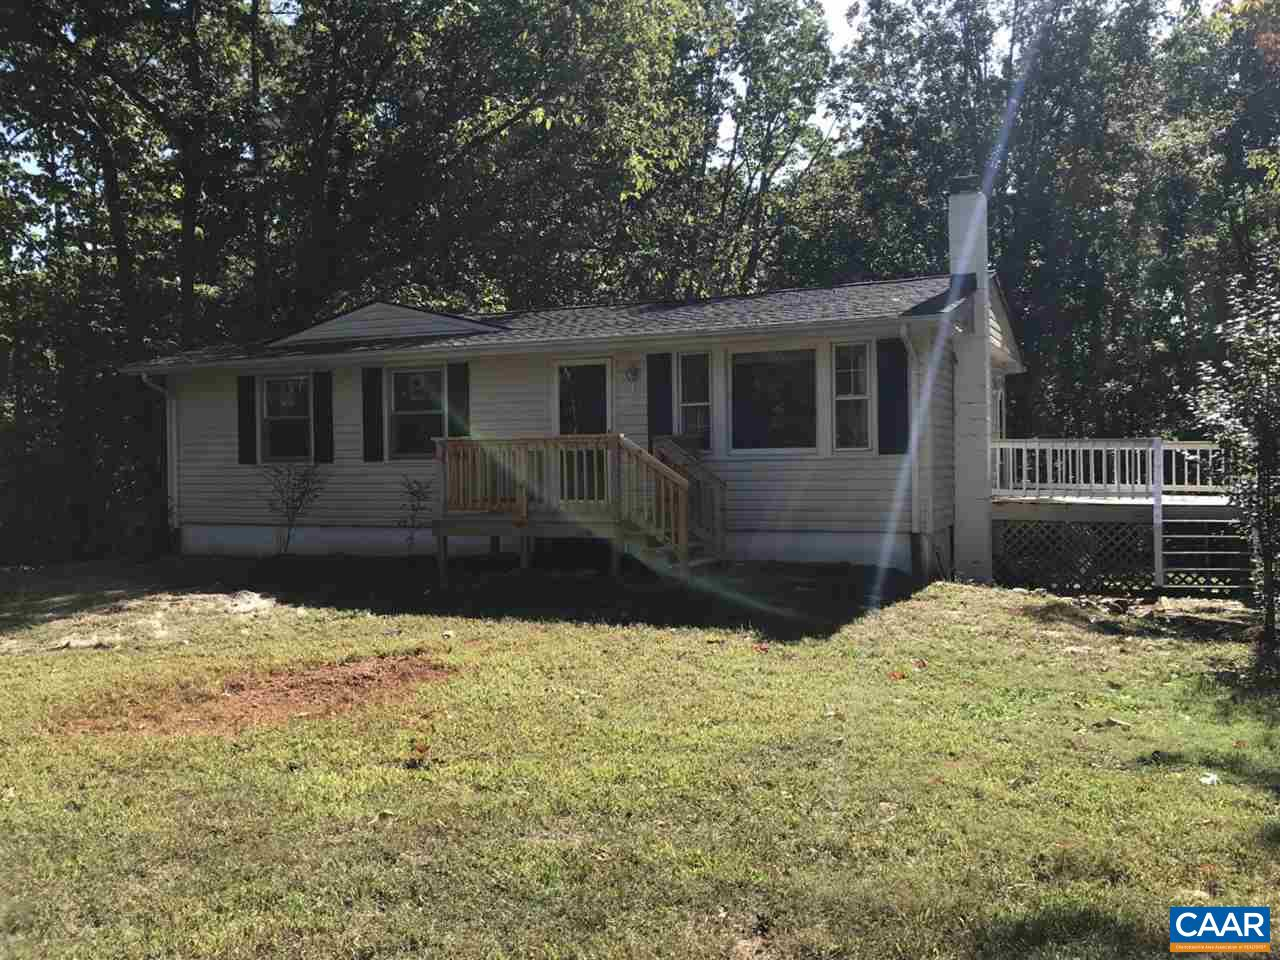 home for sale , MLS #596655, 16 Ruritan Lake Rd